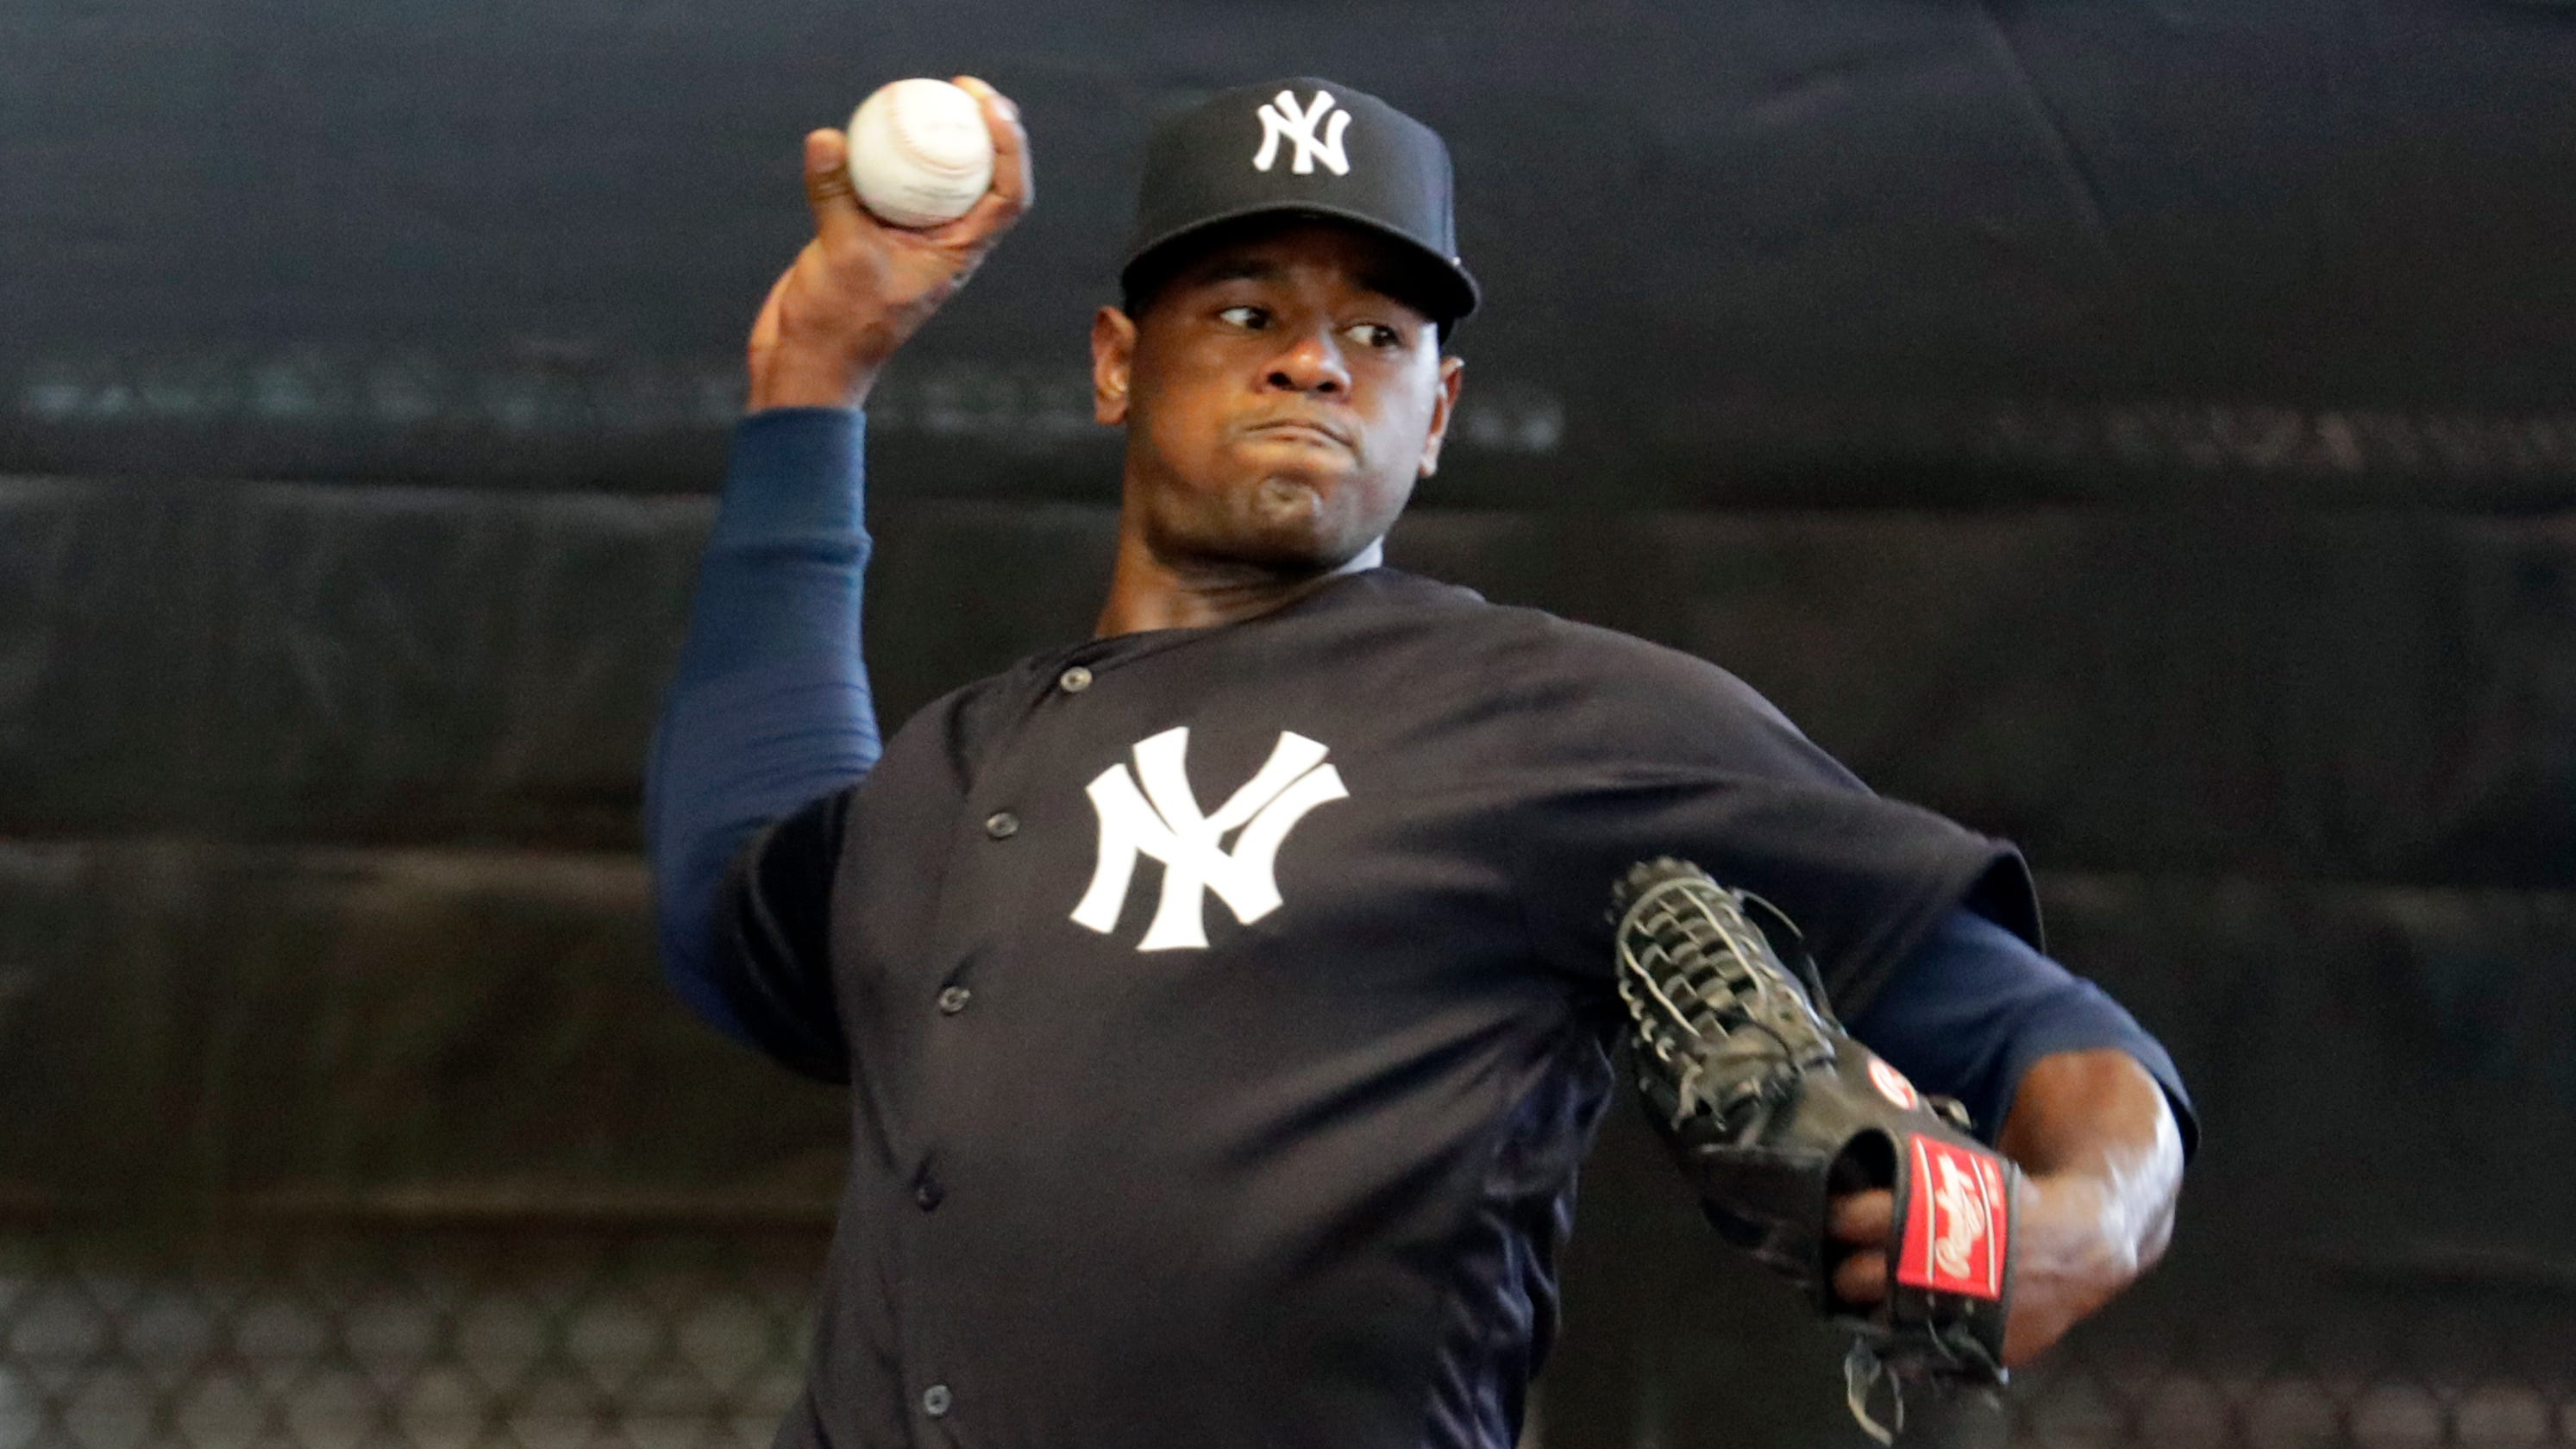 New York Yankees injury list 2019: Tracking when players